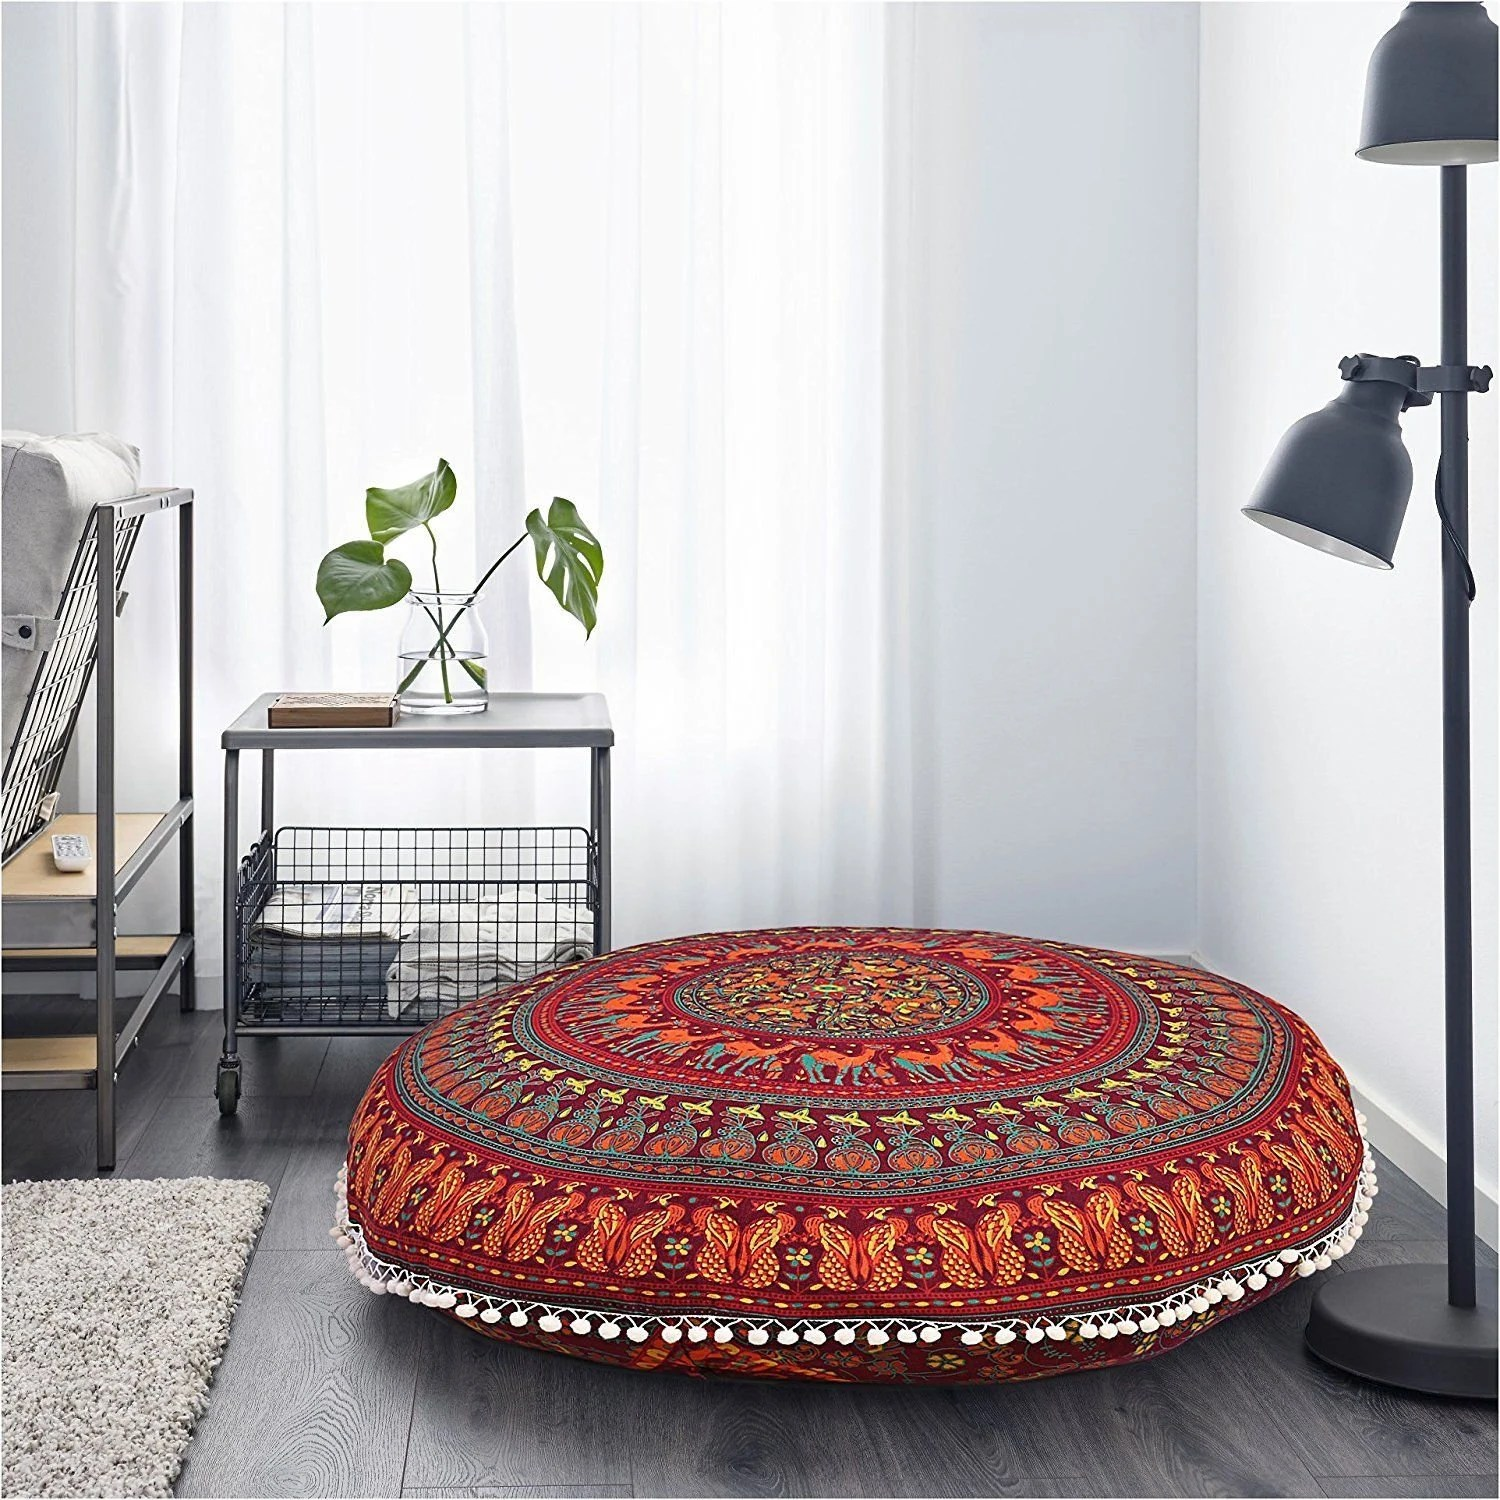 floor chair with back support philippines camping chairs costco cushion etsy large mandala covers 100 cotton bohemian round ottoman poufs cover dog bed home decorative pillow case